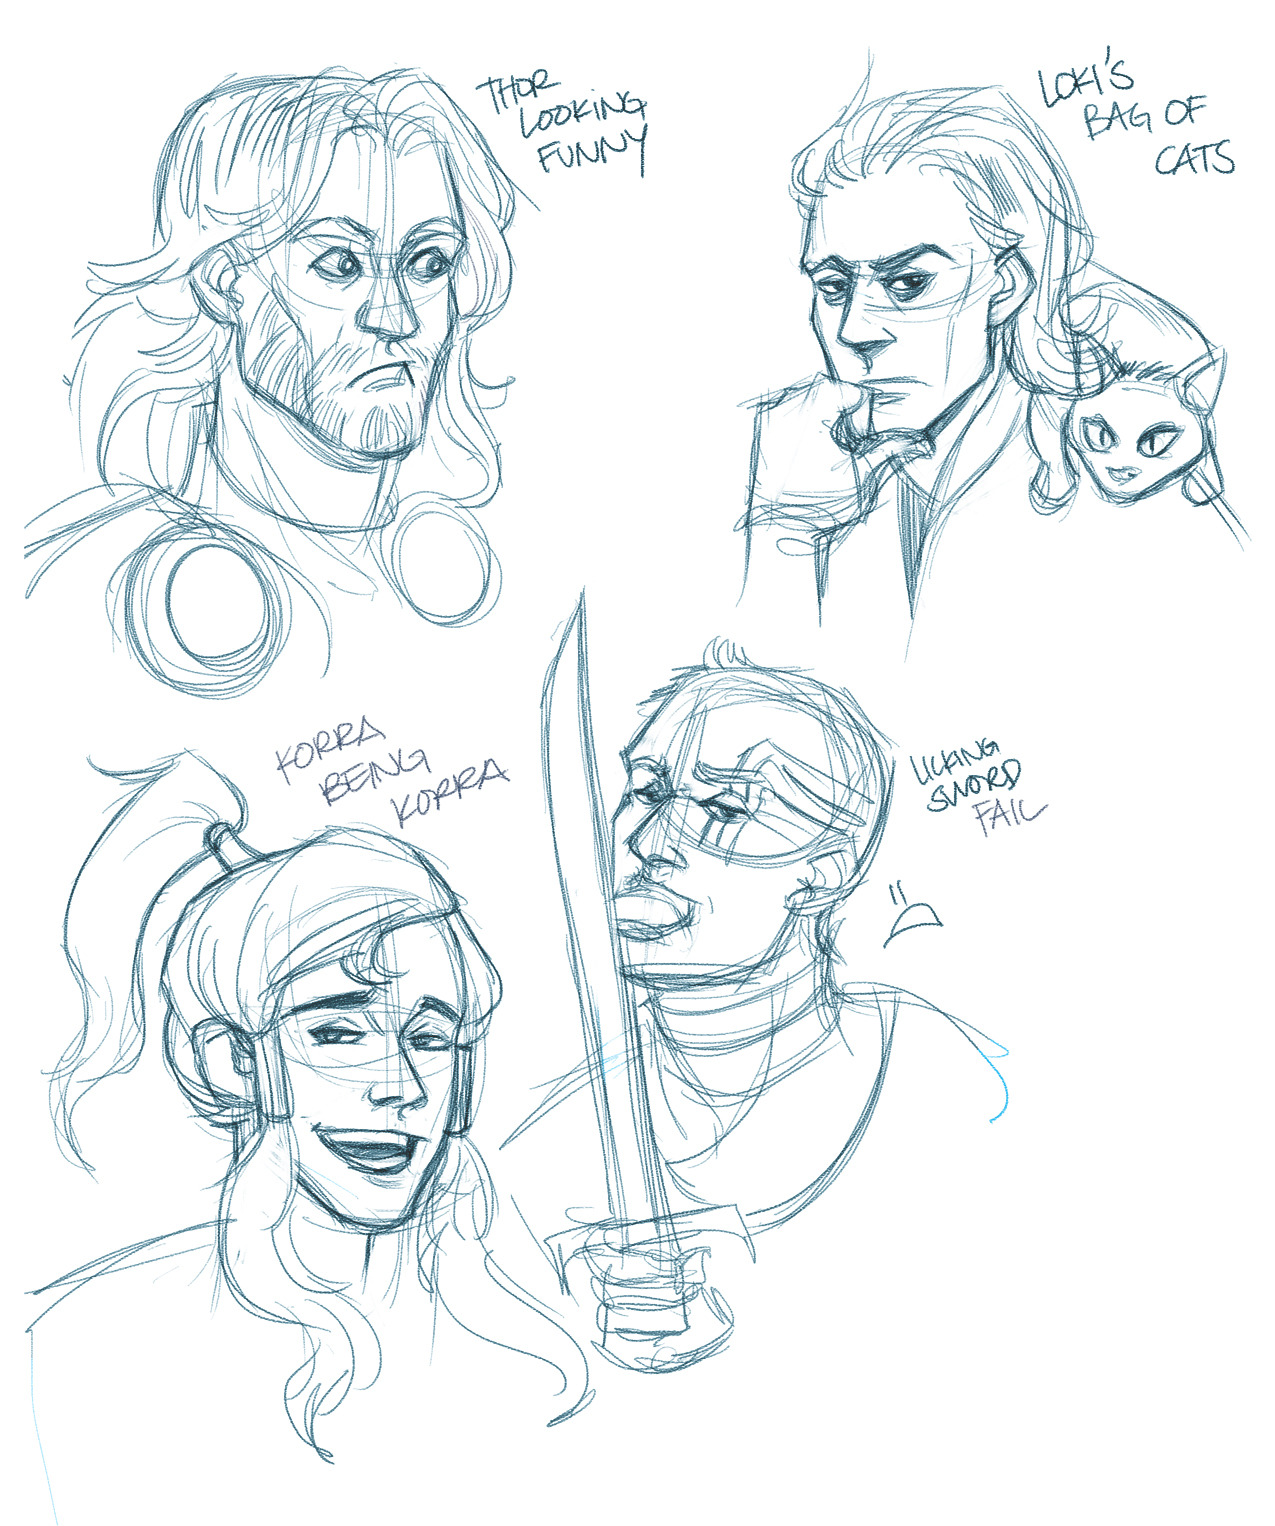 Tonight's doodles. Trying to work on expressions which are just really foreign to me. My favorite is the…top right lol